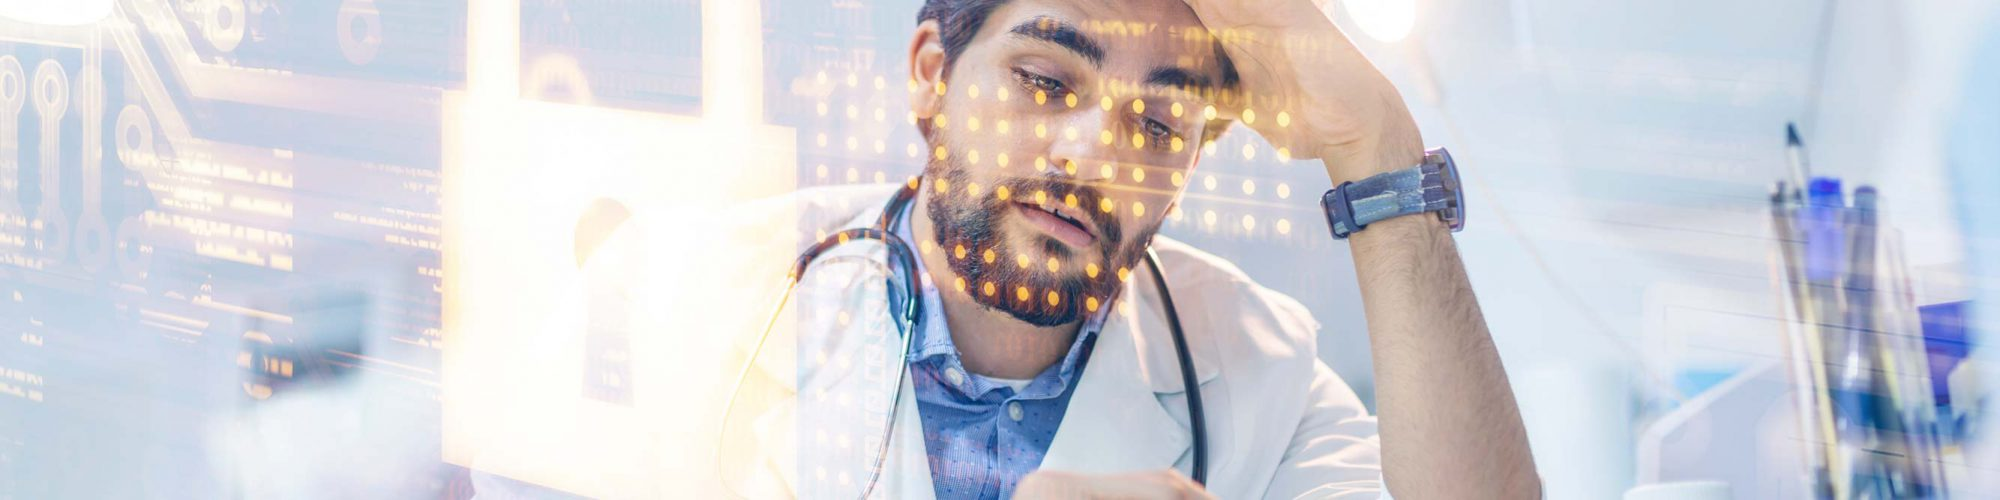 Strengthening cyber security in the healthcare sector